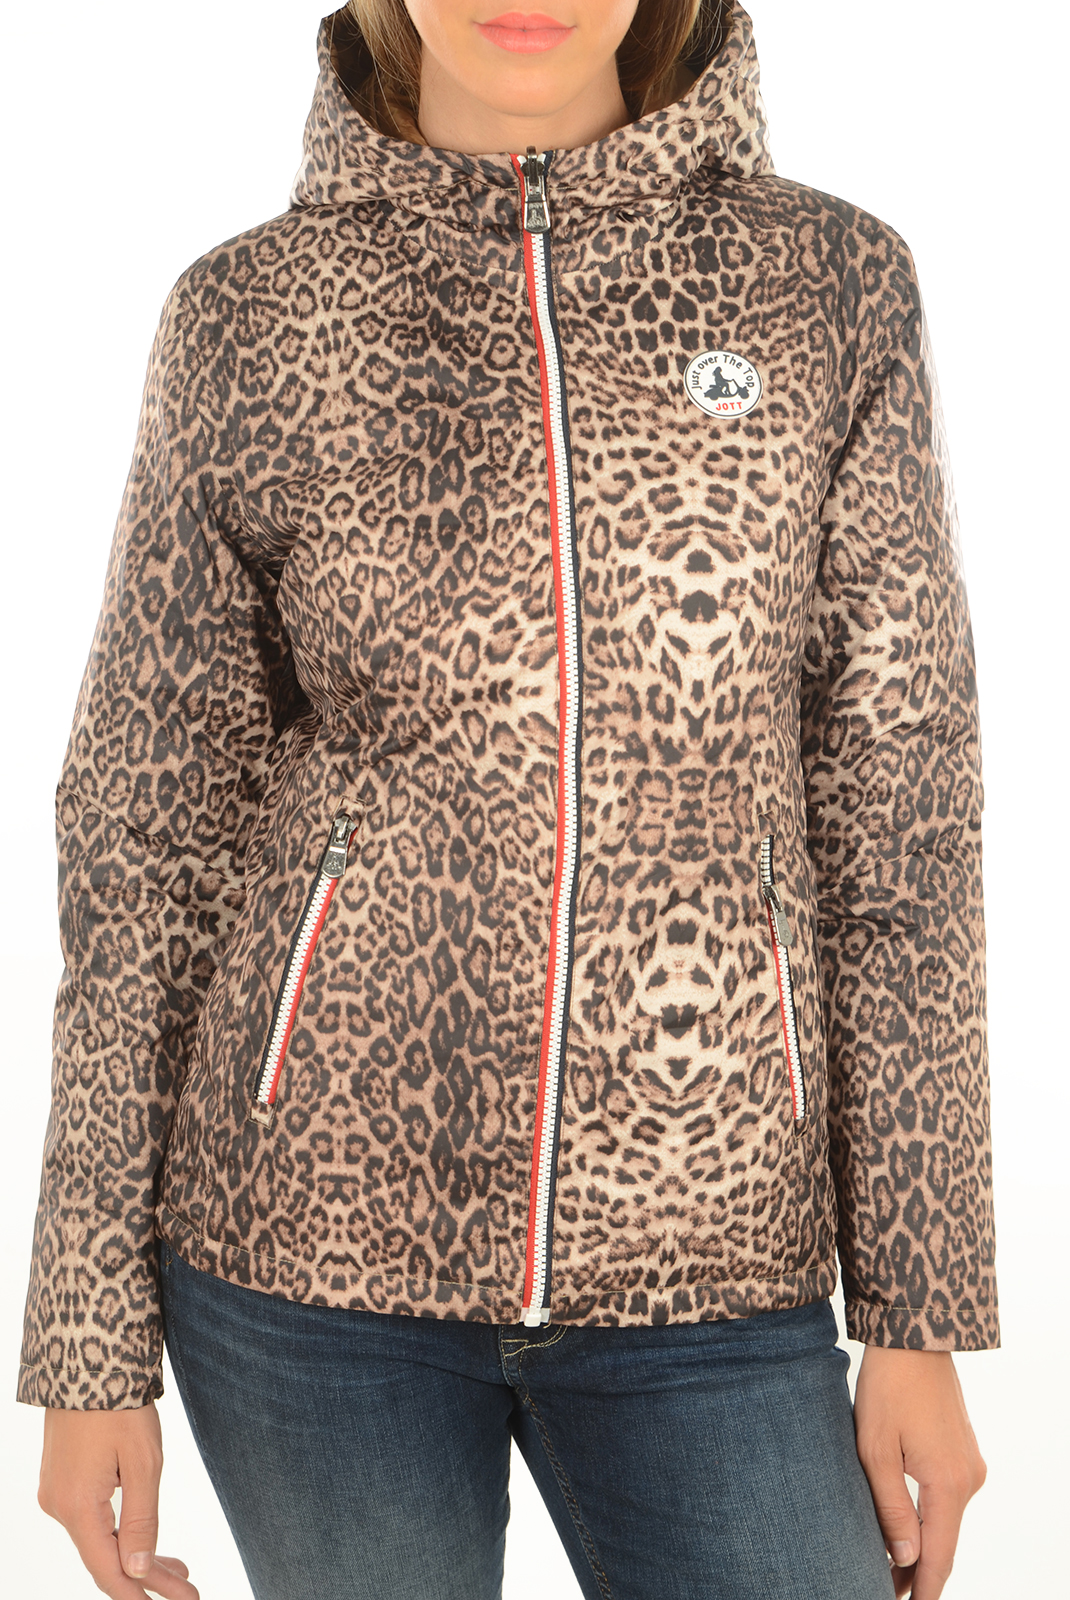 Blouson  Just over the top SEOUL LEOPARD